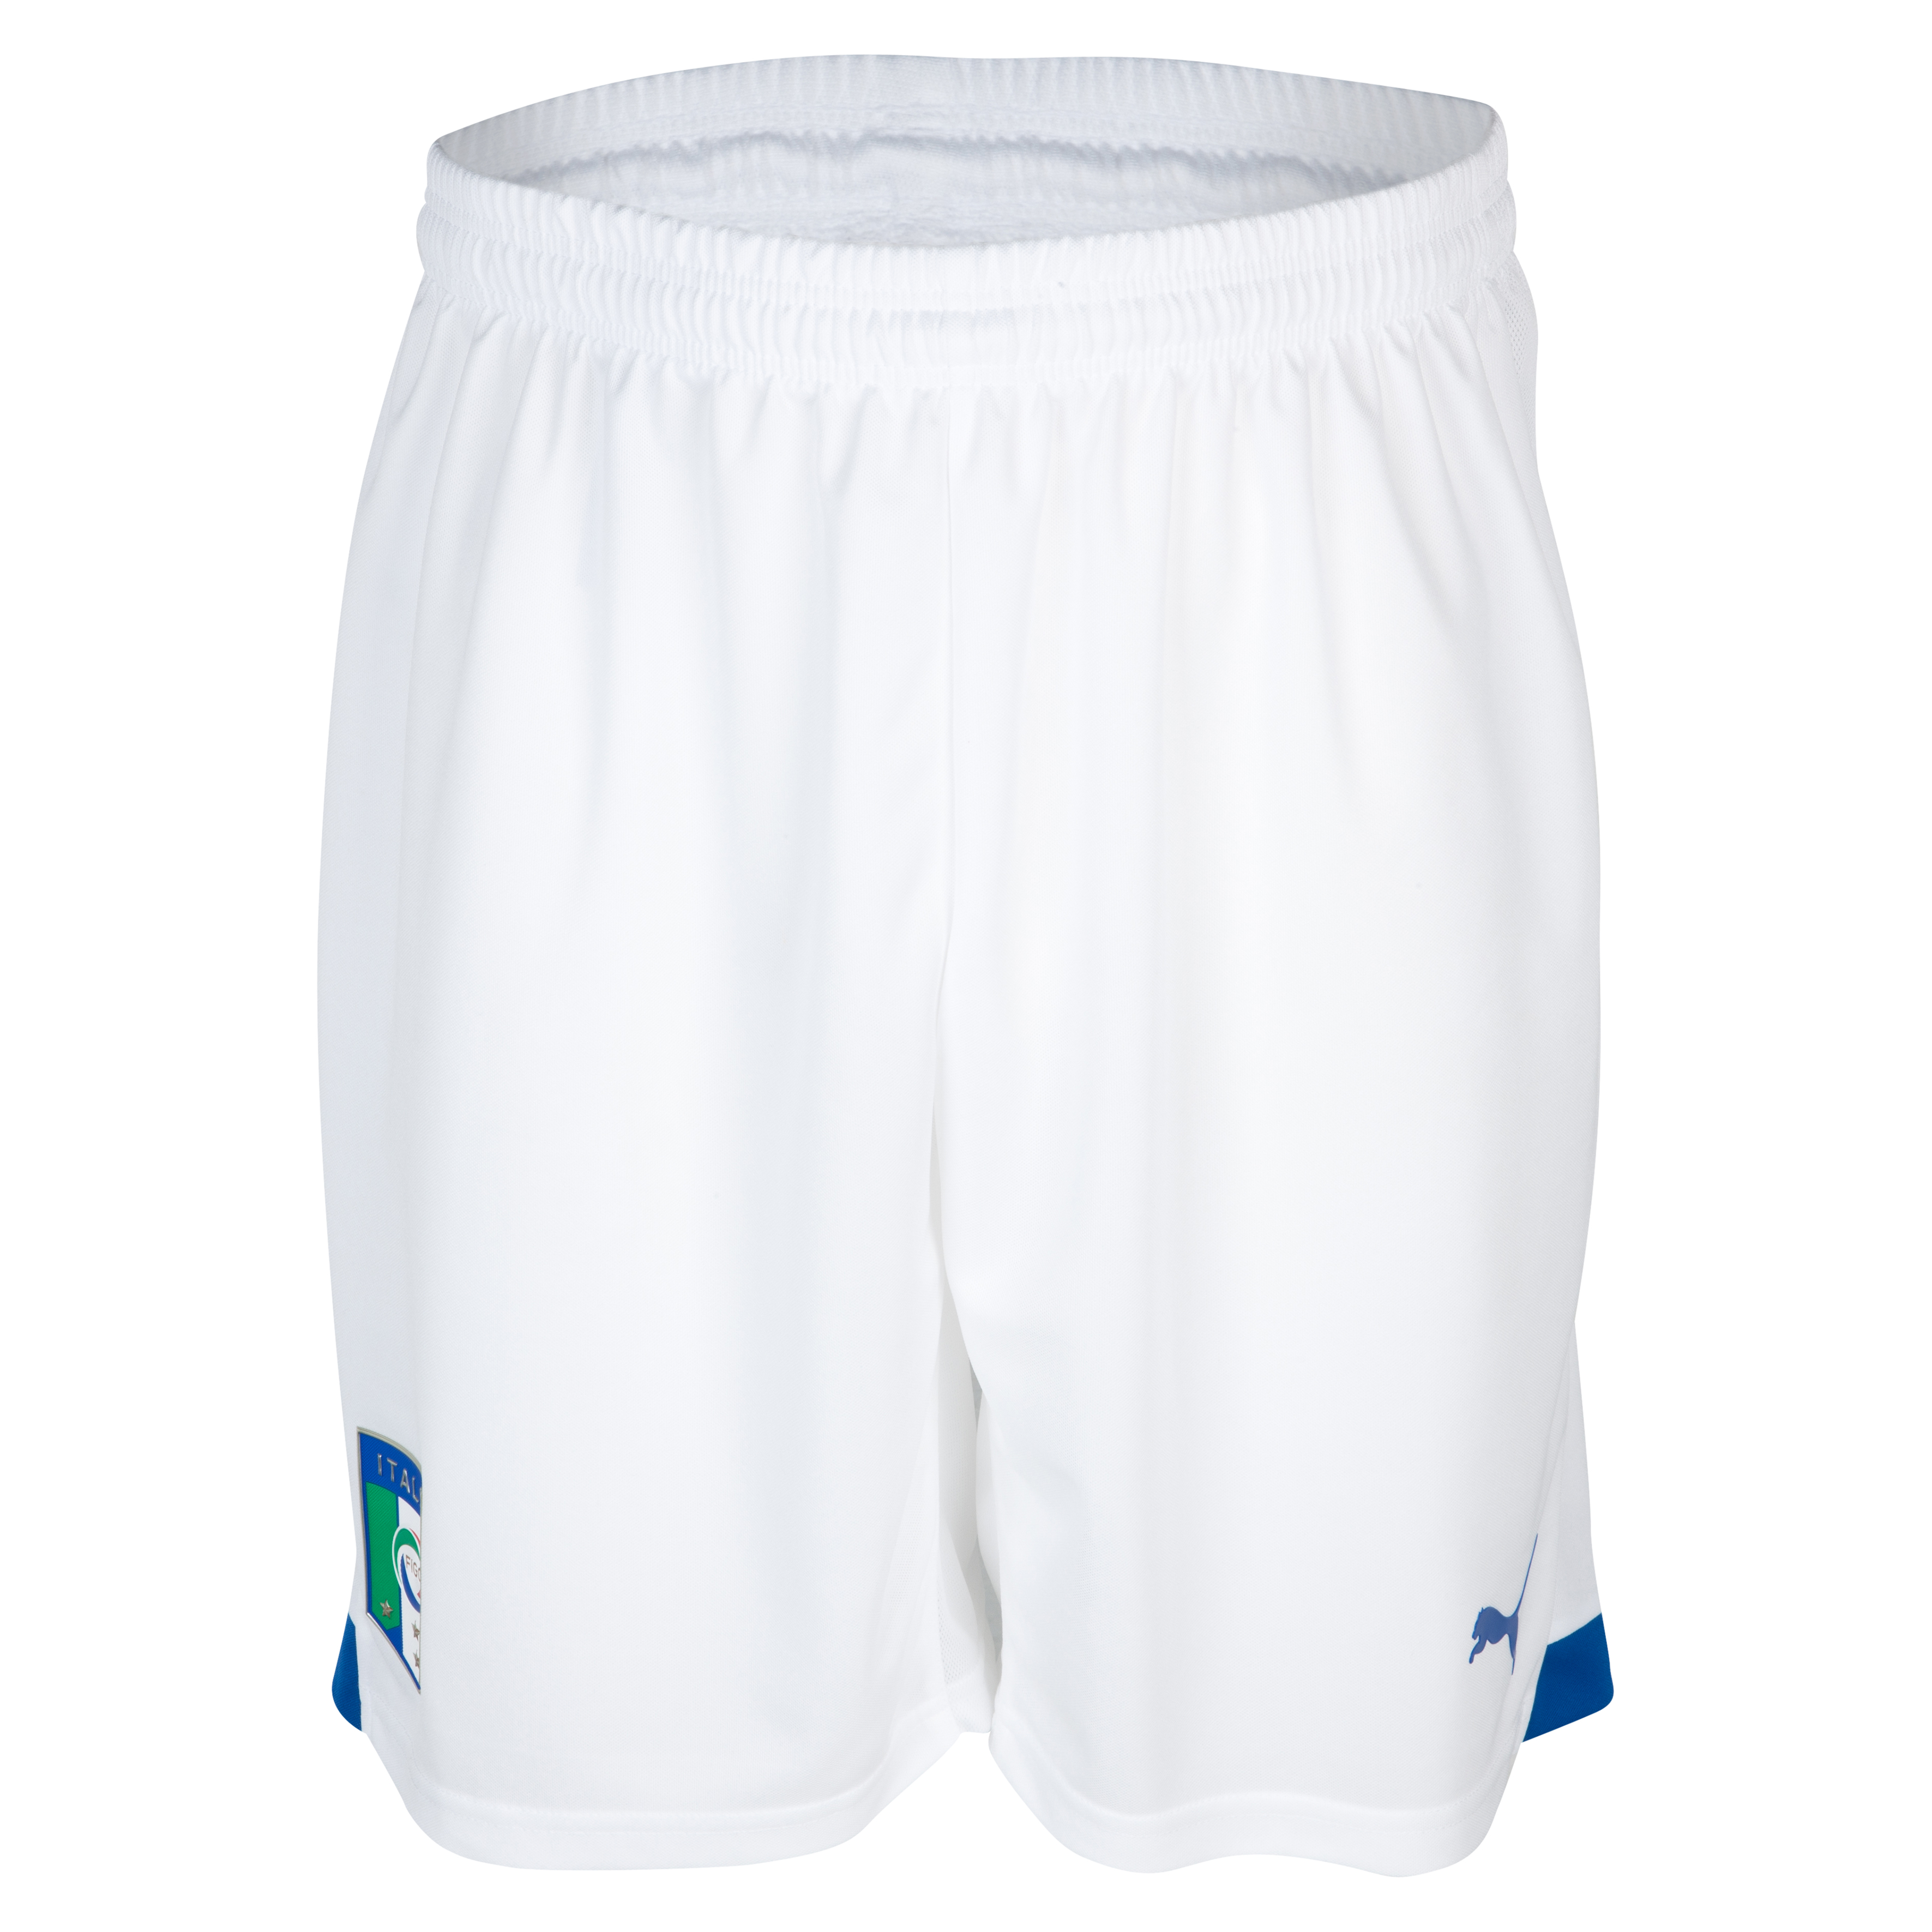 Italy Confederations Cup Home Shorts 2013 - Youths